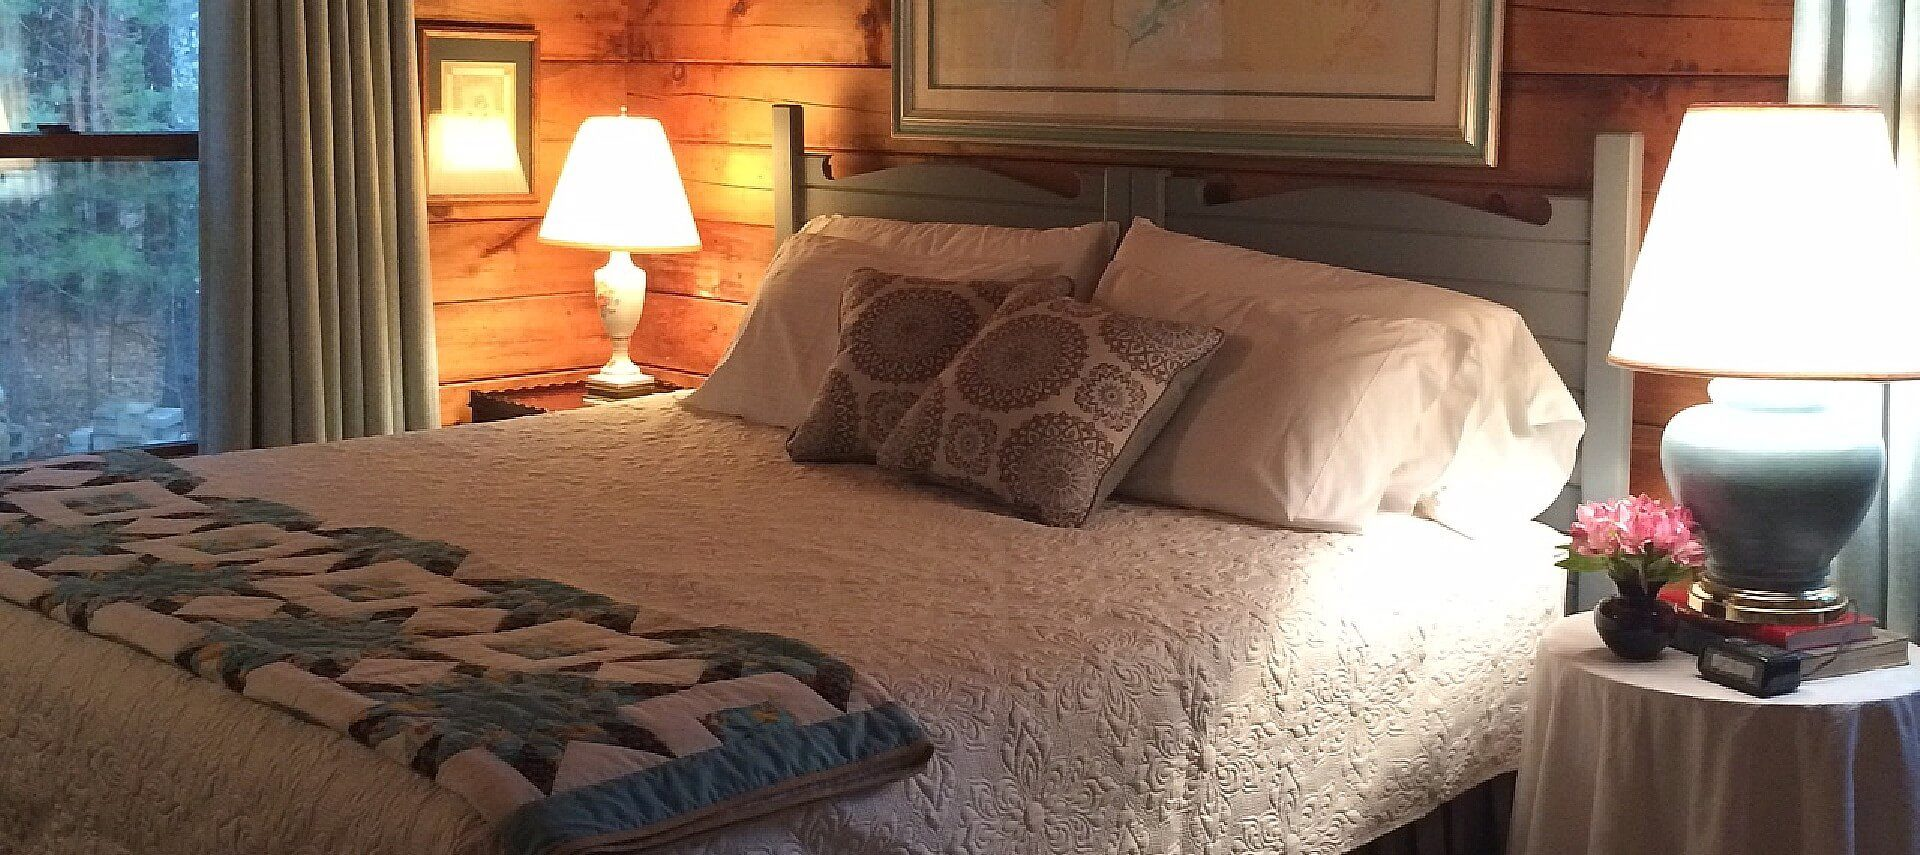 King bed with beautiful white quilt and coverlet, two side tables with lamps next to a large window with curtains